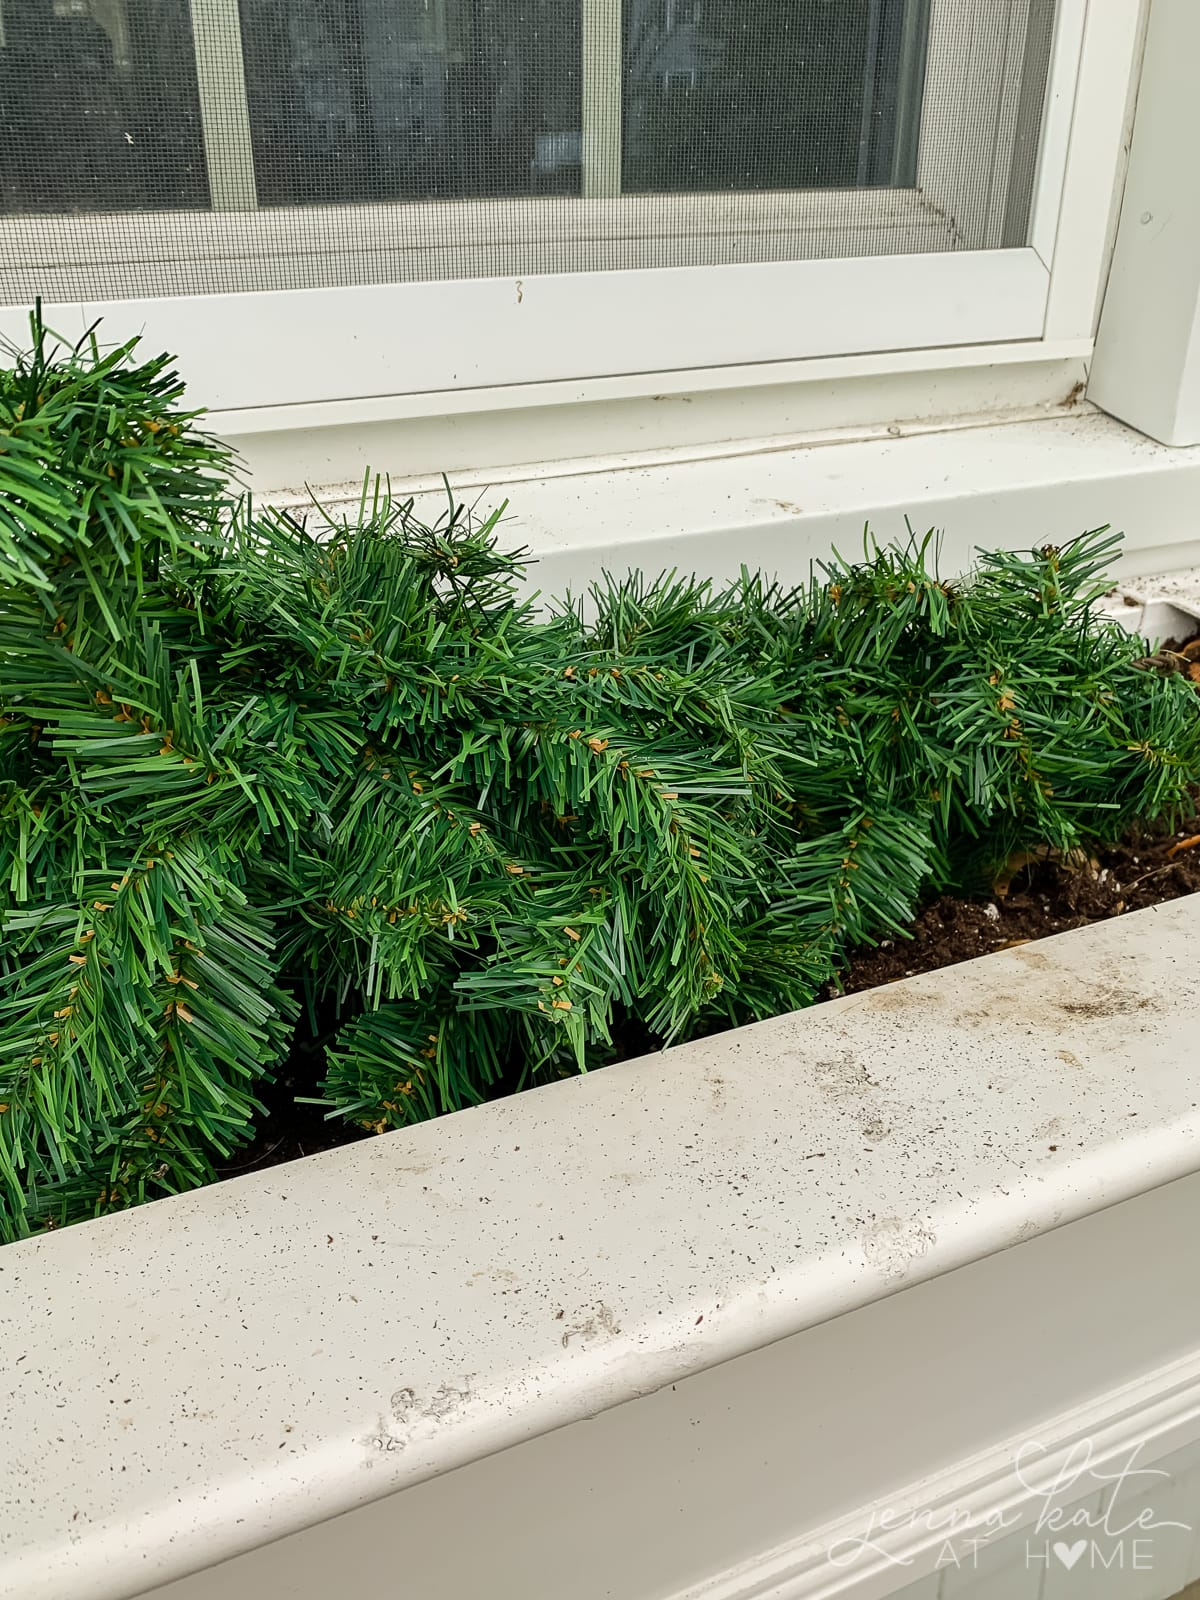 Artificial greenery to line the base of the window box